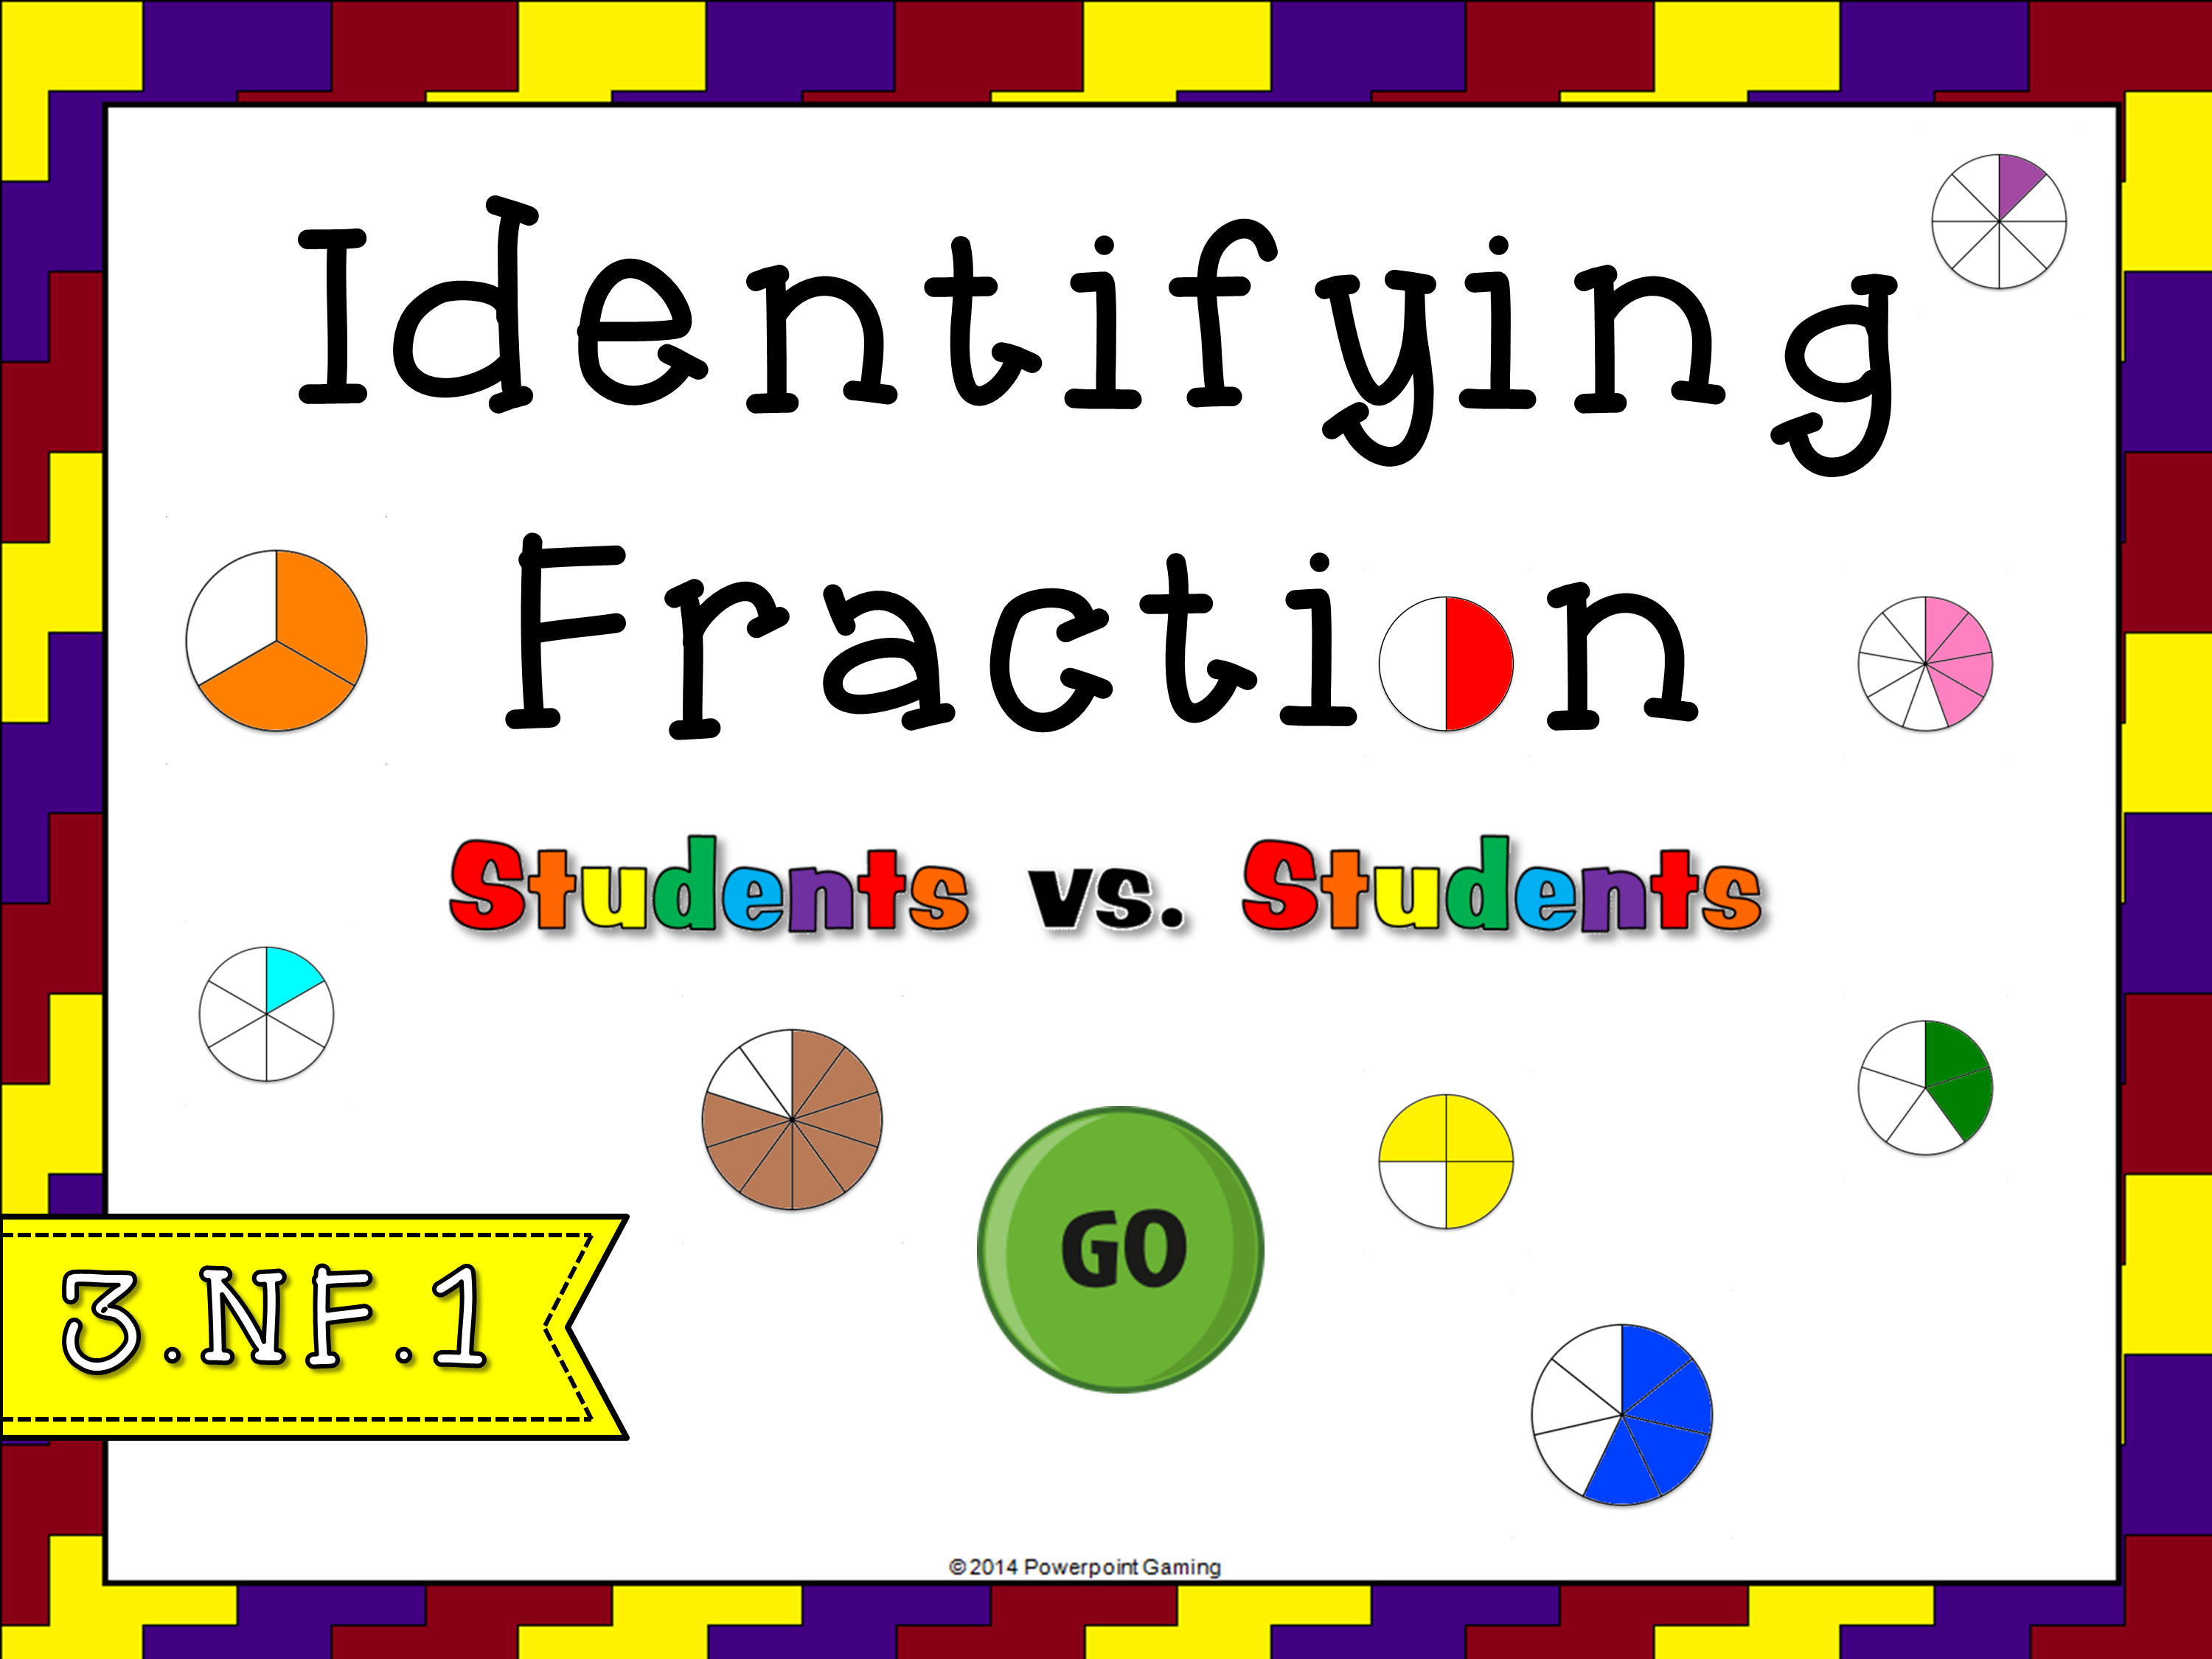 Identifying Fraction Circles Student vs Student Game